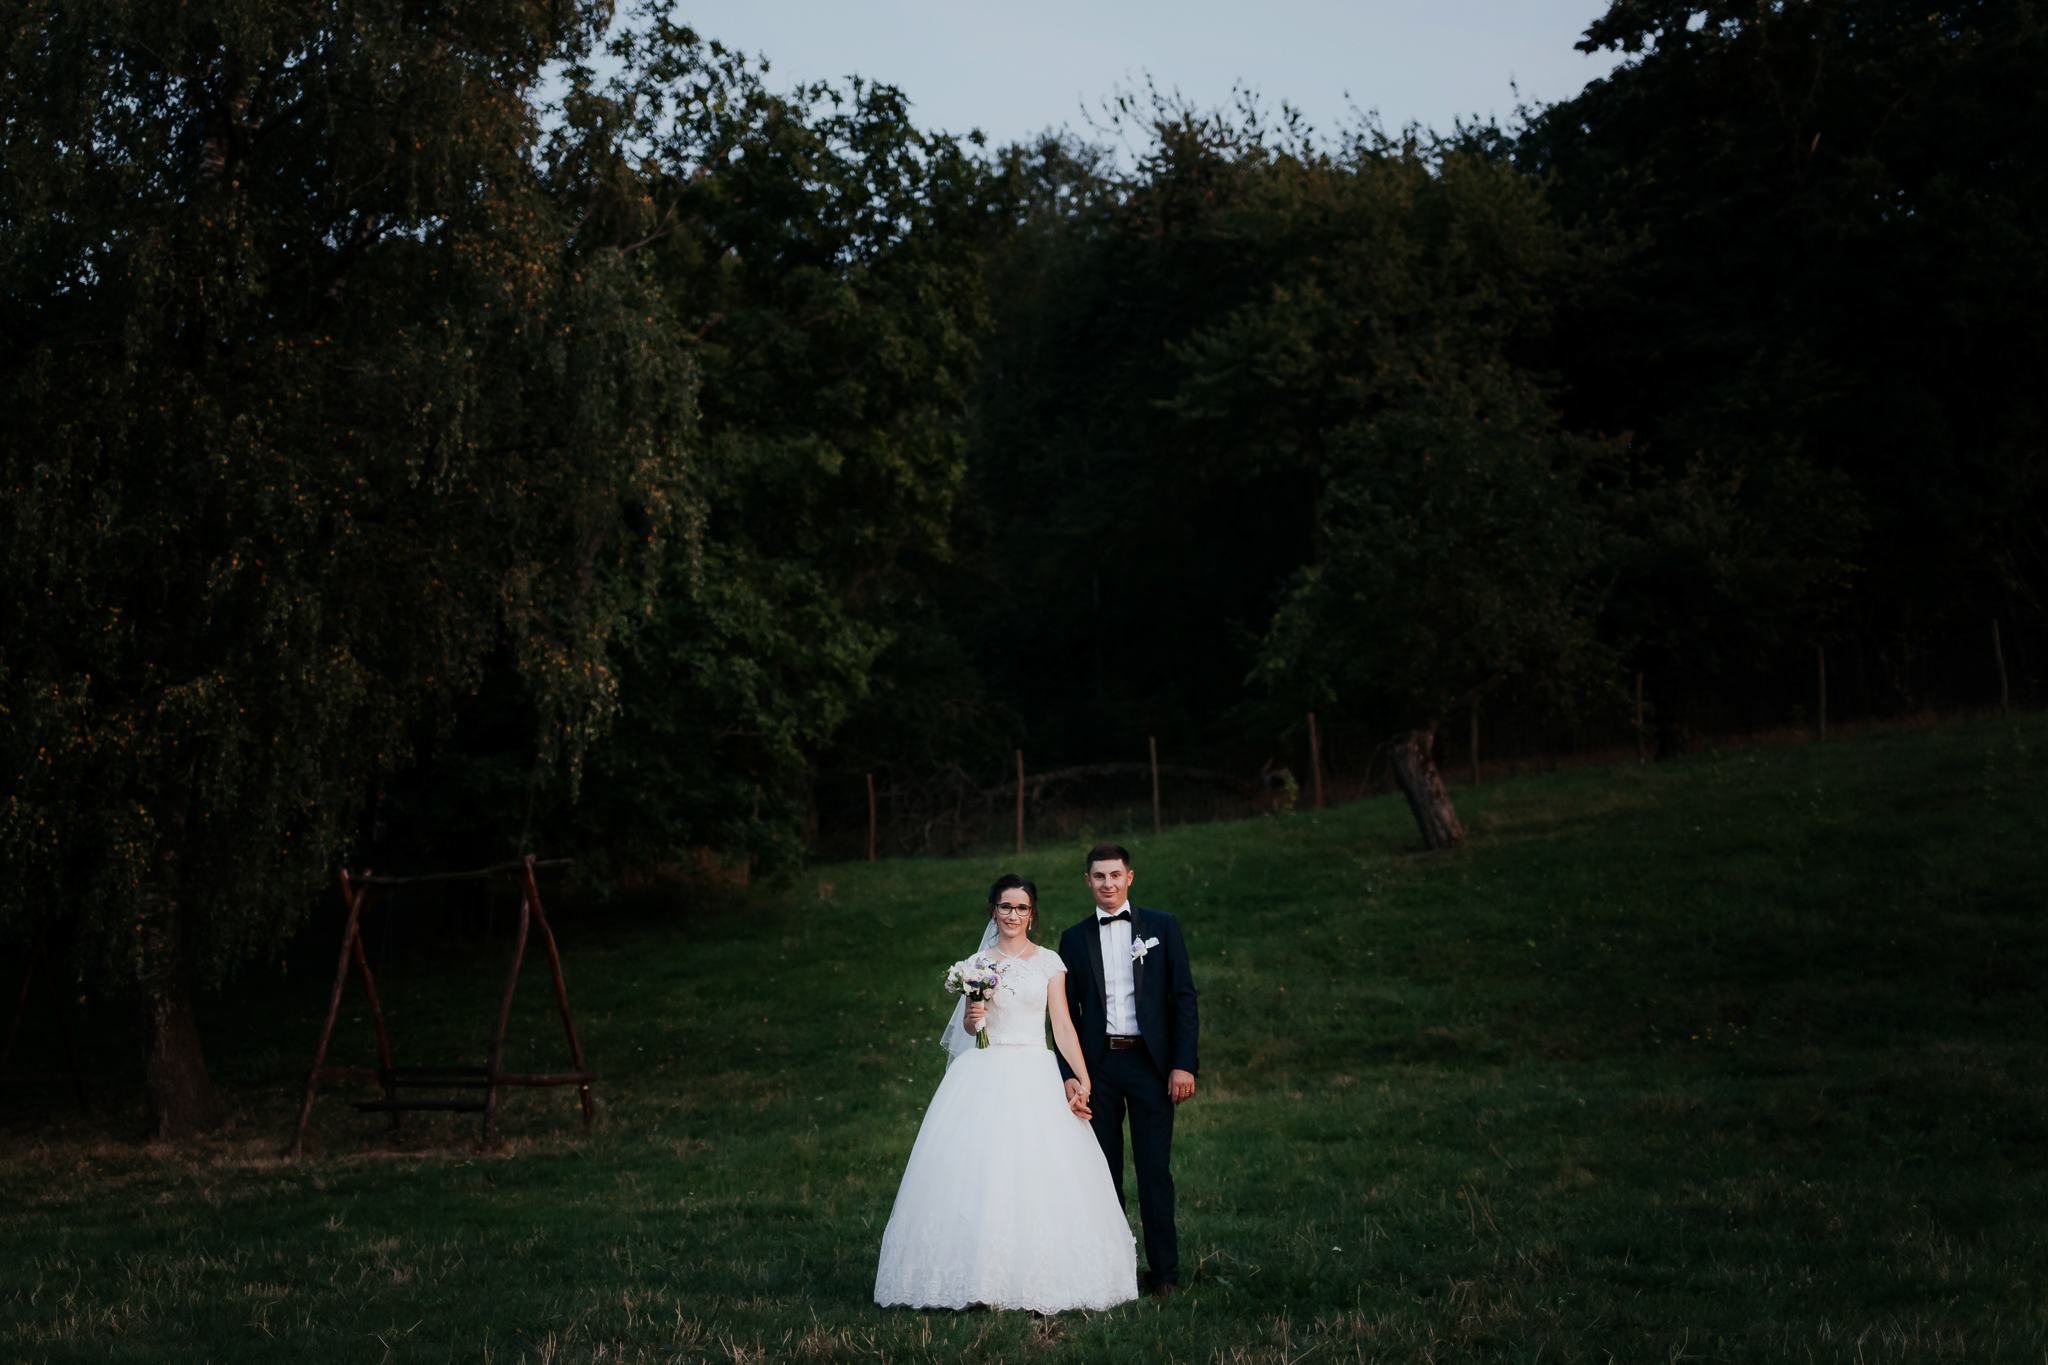 Our_wedding_0426